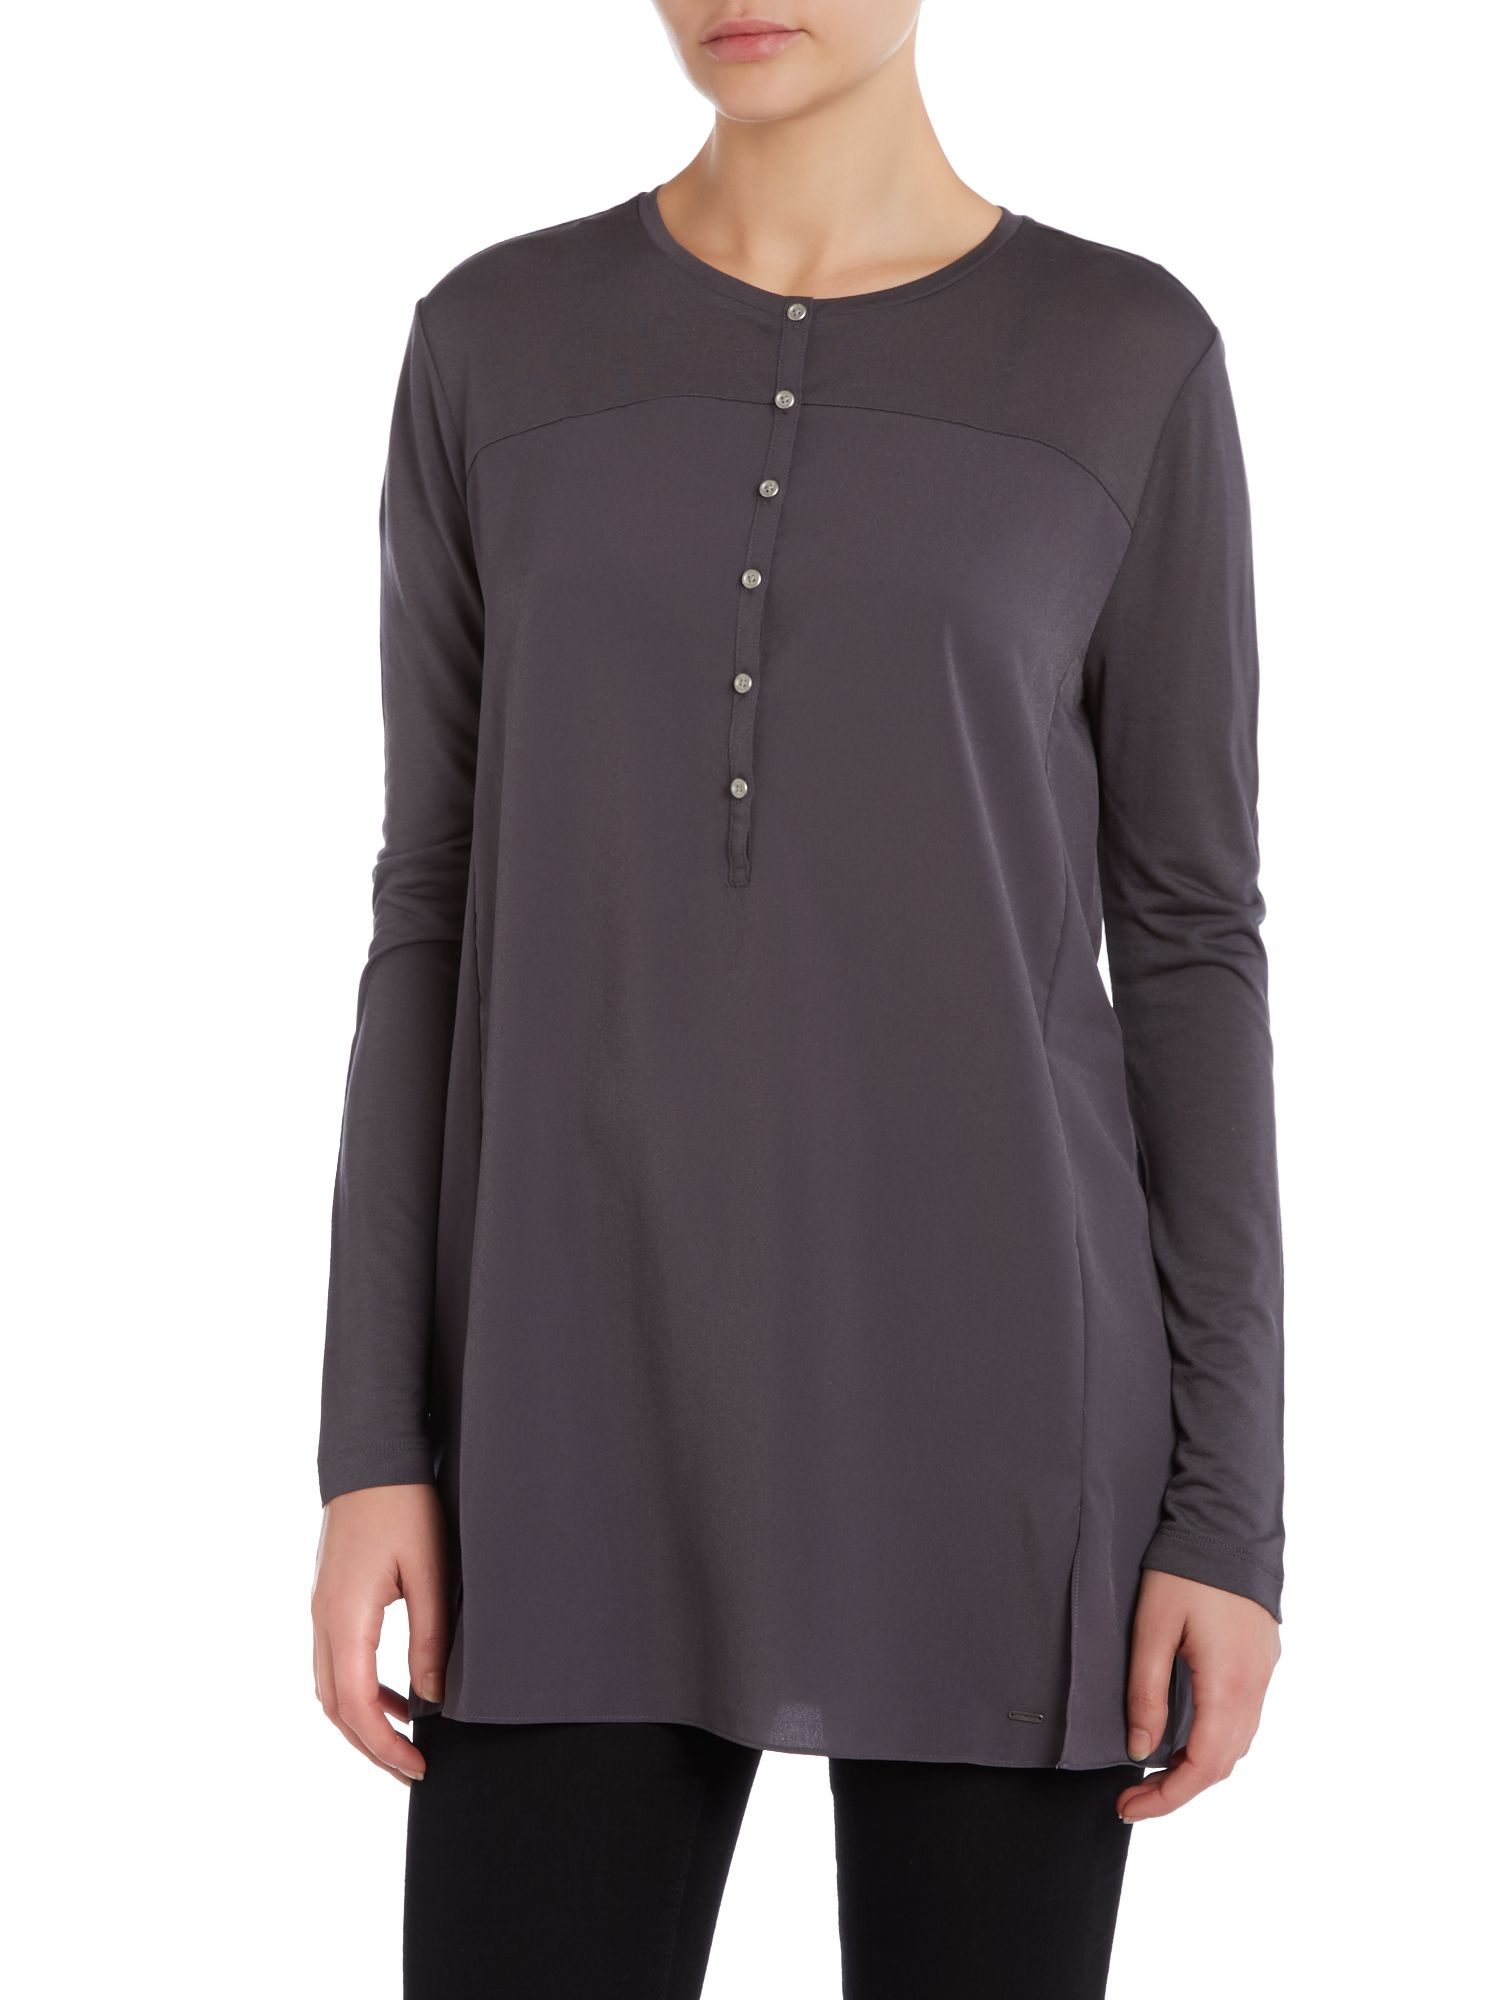 Long sleeve tess top in magnet